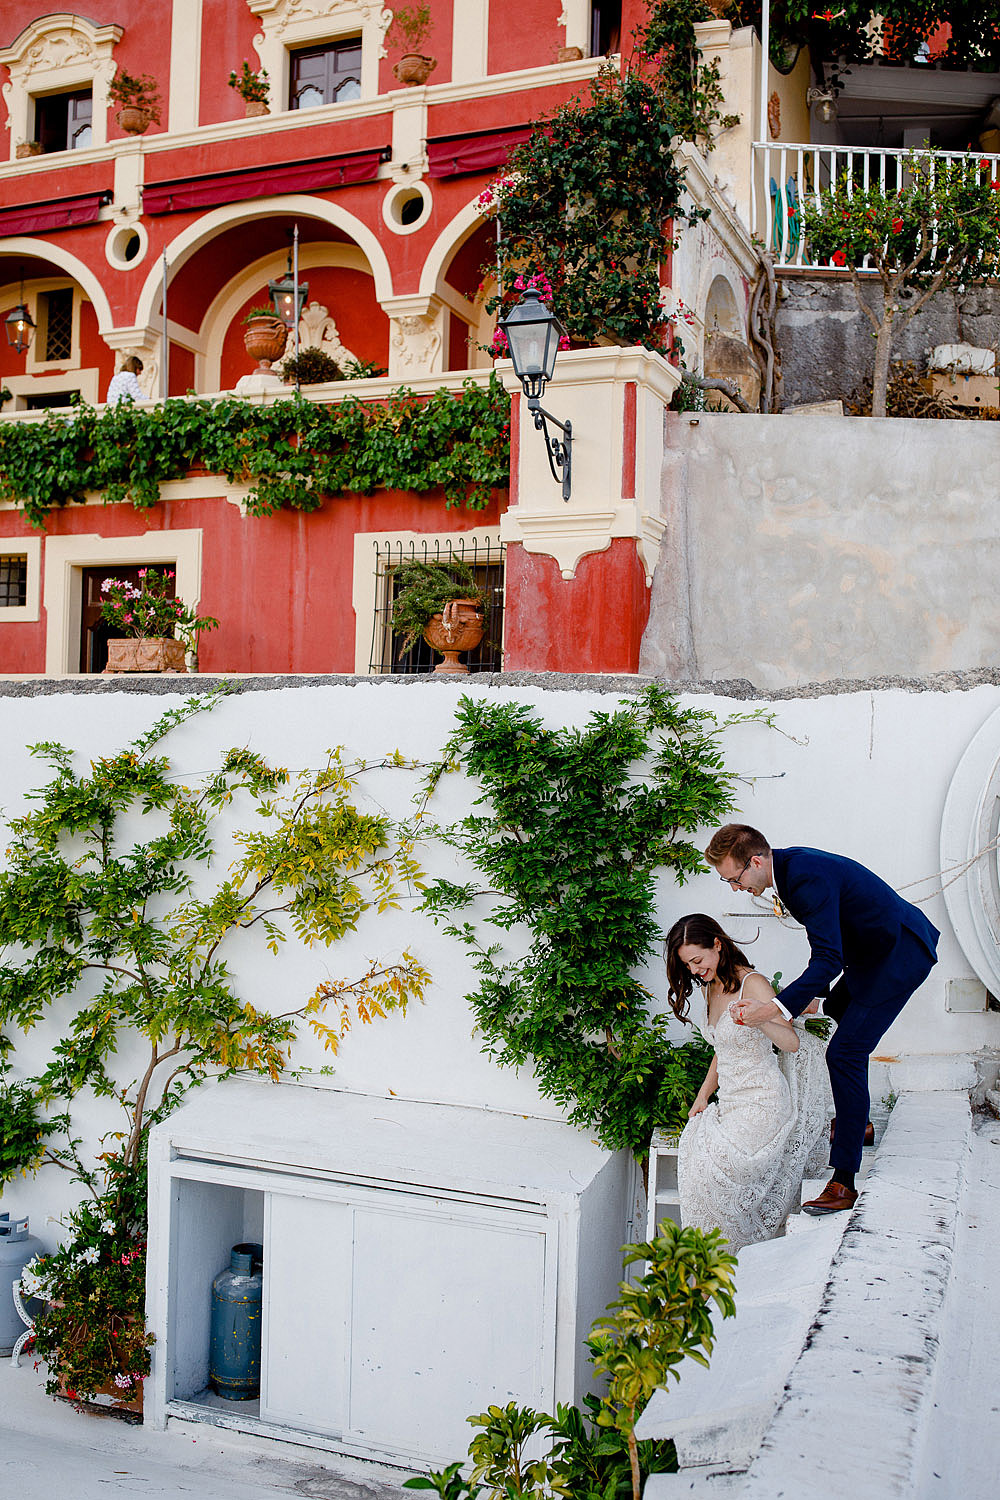 VILLA OLIVIERO WEDDING IN AN ENCHANTED LOCATION POSITANO :: Luxury wedding photography - 35